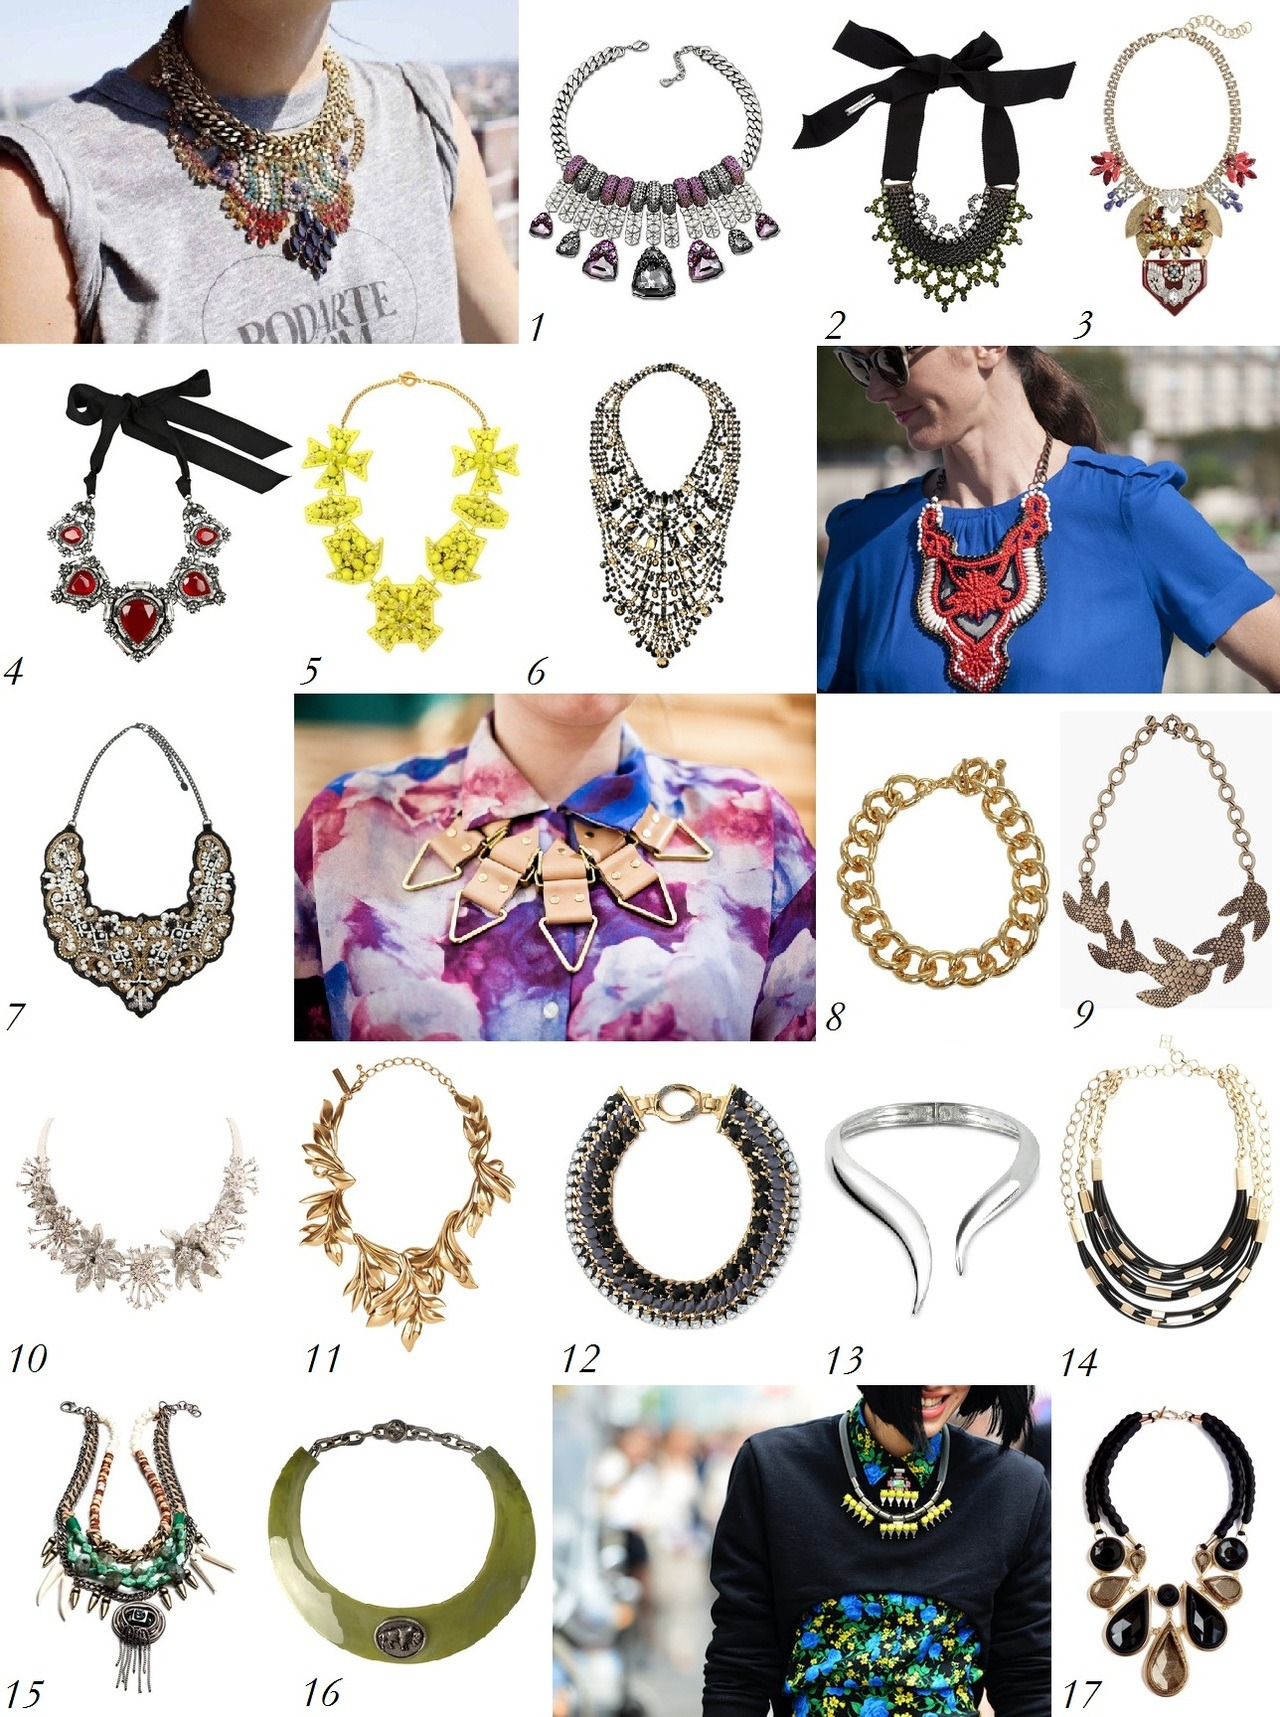 Trend Watch: Bold Necklaces The biggest jewelry trend (both literally and figuratively) this fall is, without a doubt, bold necklaces. Helmed by street style icons like Miroslava Duma and Leandra Medine, large ornate necklaces have caught on with a vengeance and were a constant presence outside shows in New York, London, Milan, and Paris this fashion month. We love these large and in charge necklaces as the perfect fall jewelry that won't get lost in the weave of heavy knit sweaters like their more delicate counterparts might.  1. Swarovski 2. Paula Bianco 3. Lulu Frost for J Crew 4. Lanvin 5. Heaven Tanudiredja 6. Tom Binns 7. Zara 8. Michael Kors 9. Alexander McQueen 10. Oscar de la Renta 12. Stella & Dot 13. Giuseppe Zanotti 14. BCBG 15. Dannijo 16. Bimba & Lola 17. Moran Porat How will you be wearing this trend?